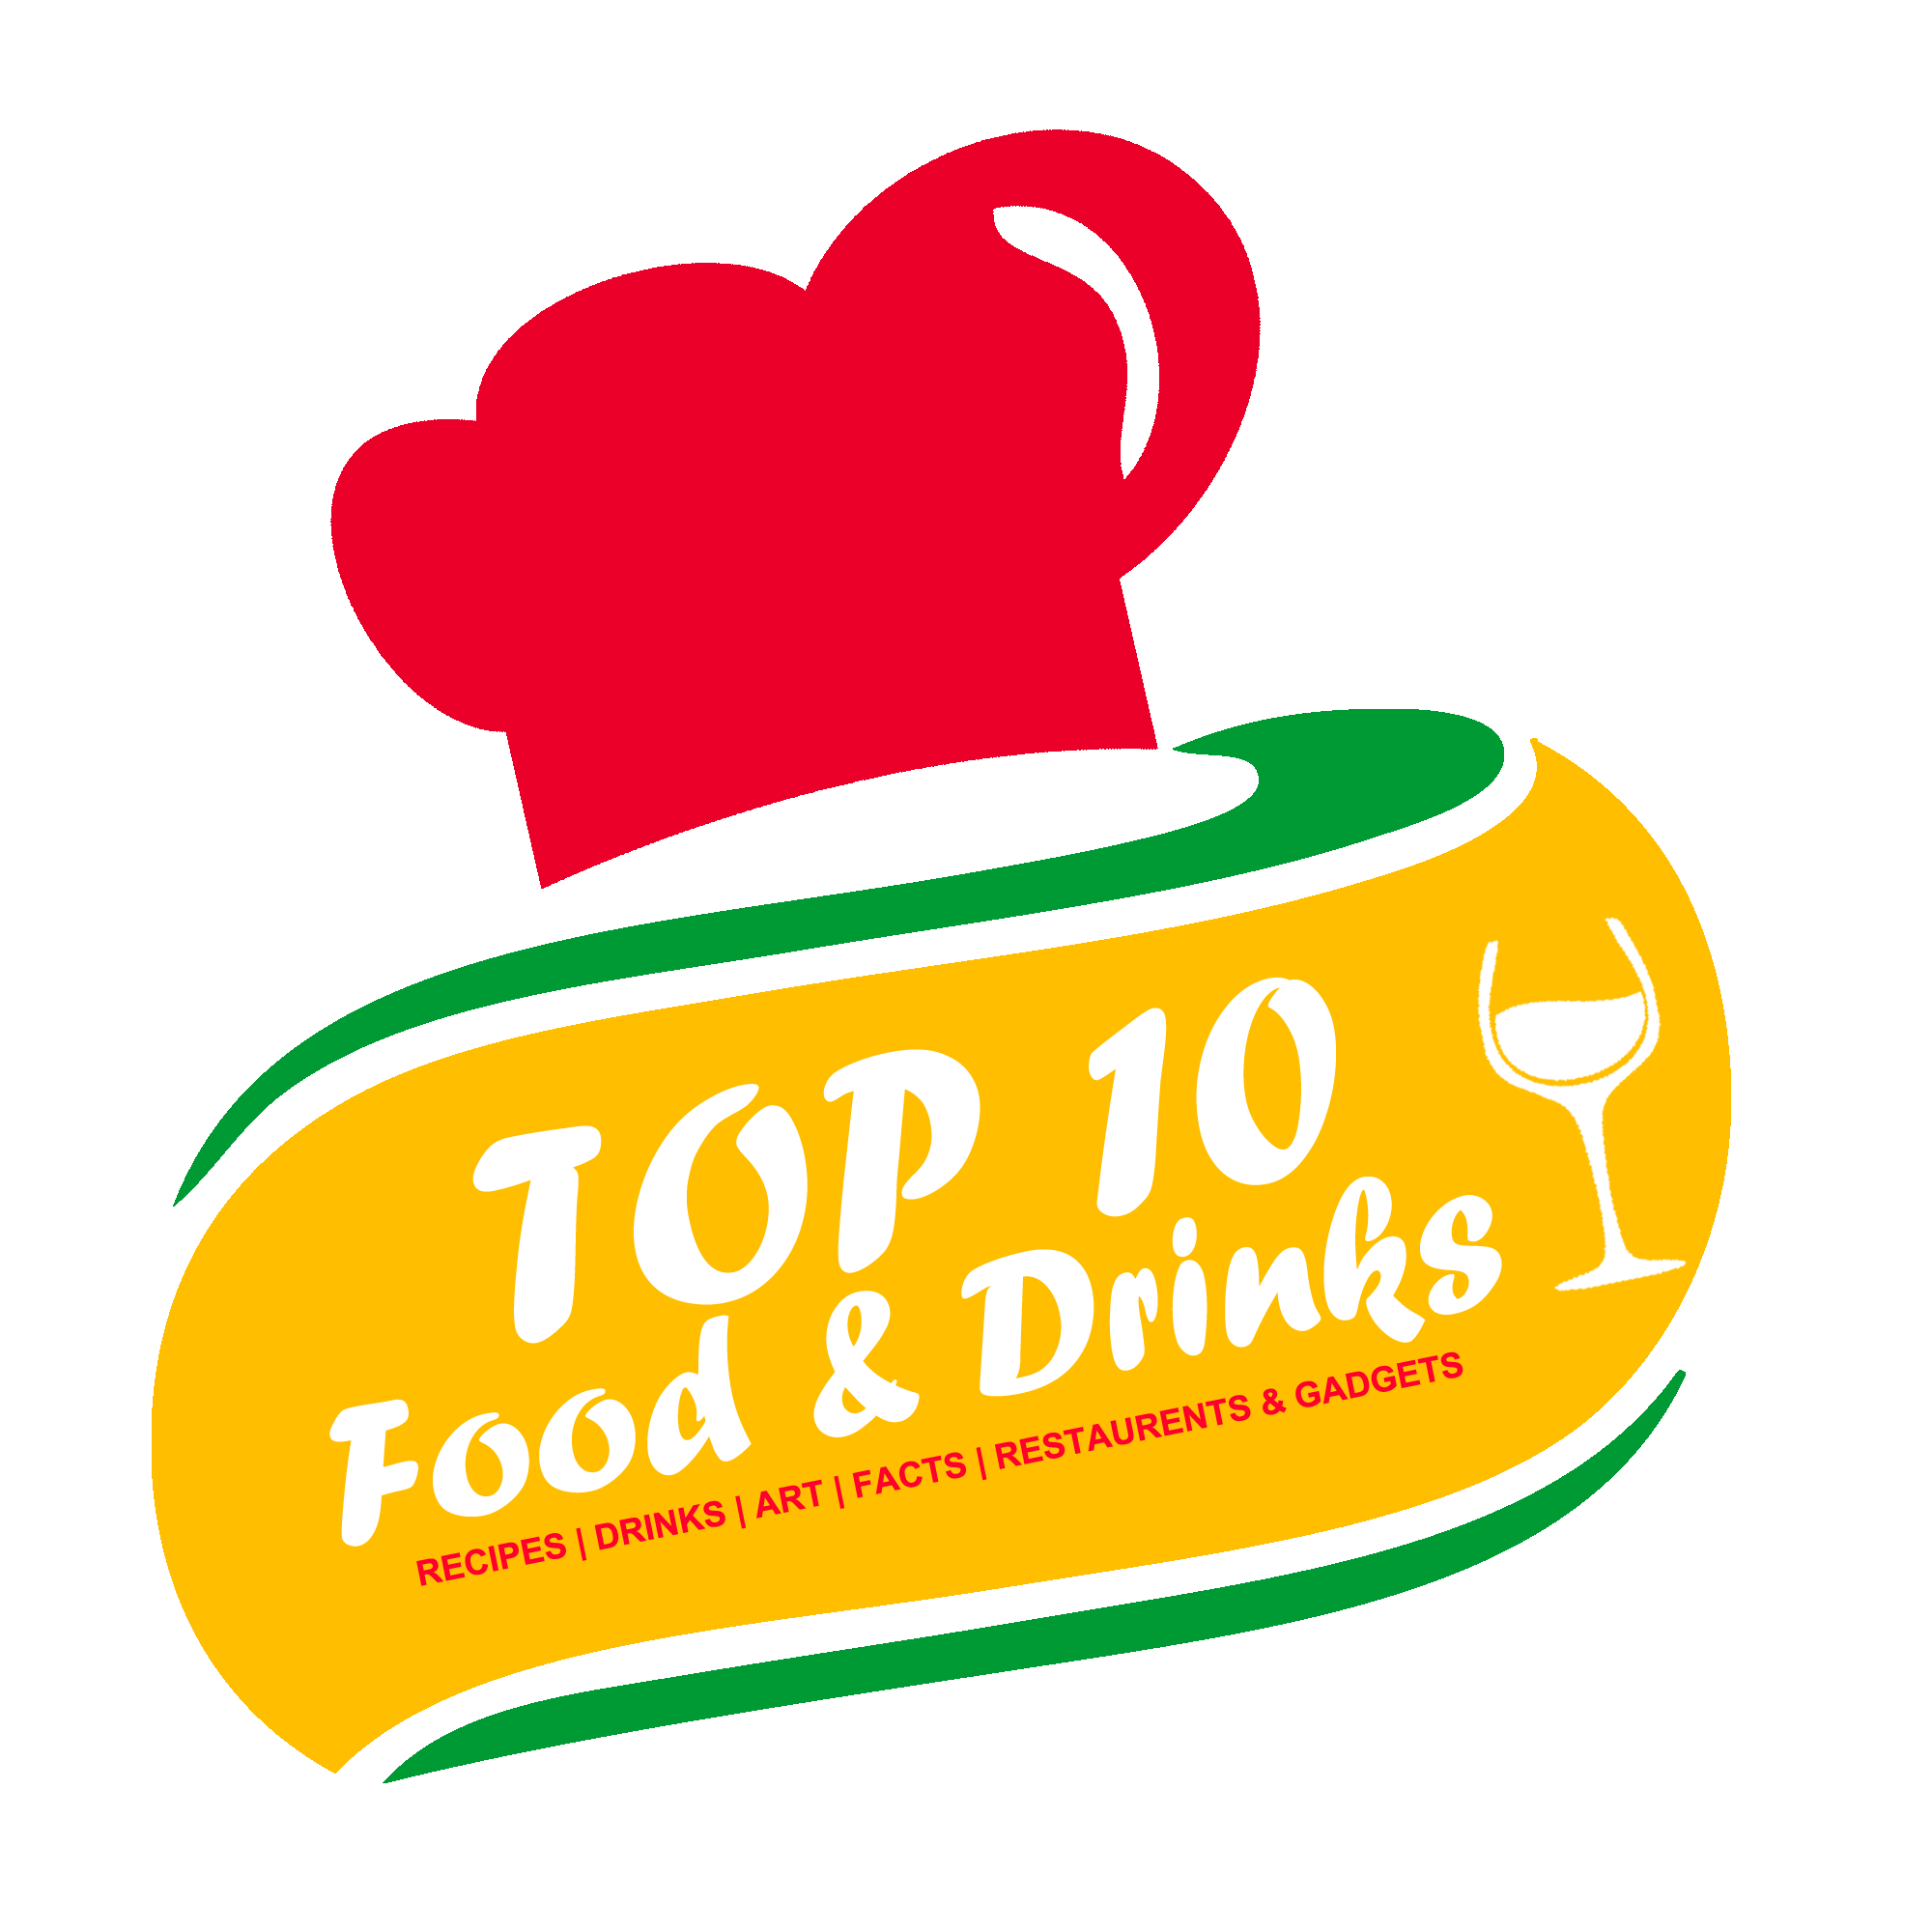 Top 10 food drink logo top 10 food and drinks from around the world published 15th may 2015 at 2000 2000 in top 10 food drink logo forumfinder Choice Image